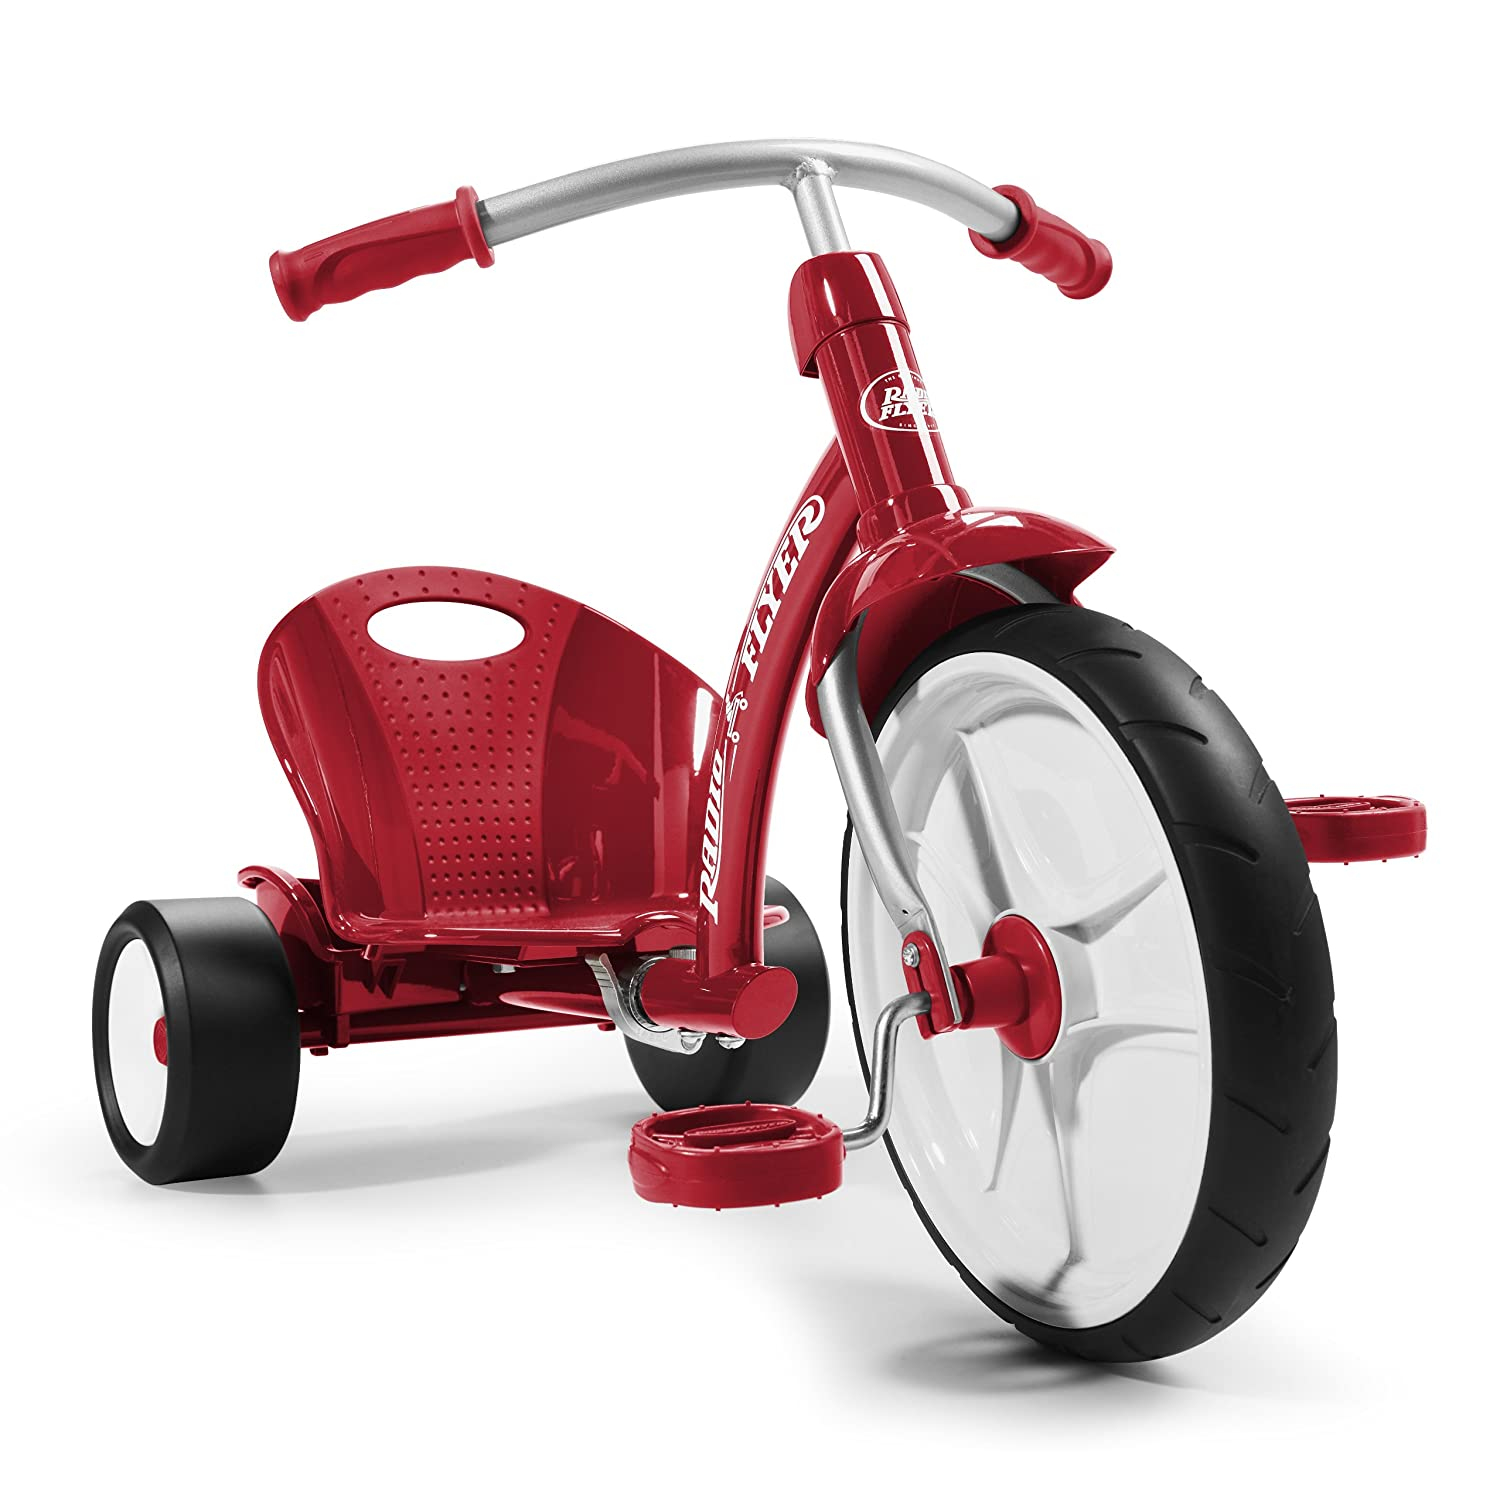 Tricycle For 2 Year Old Get The Best Tricycles For Kids